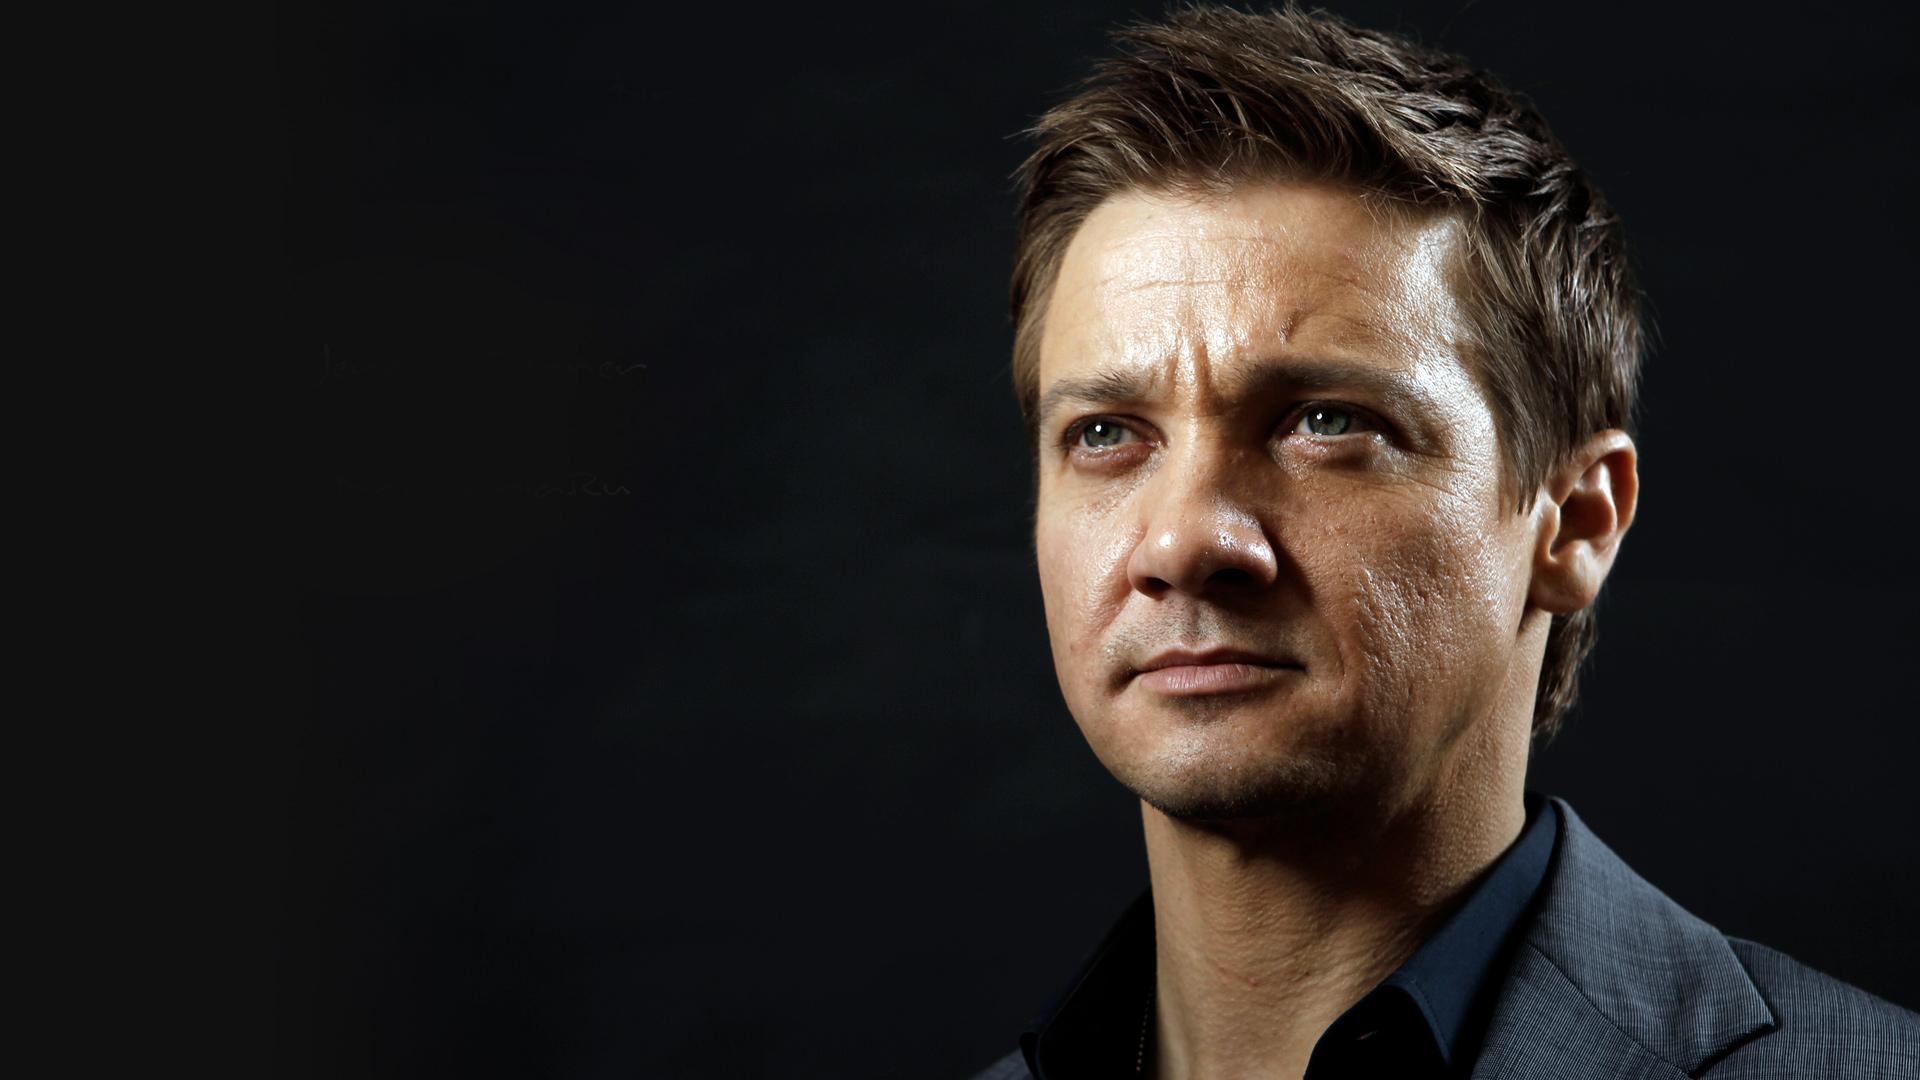 1920x1080 - Jeremy Renner Wallpapers 5